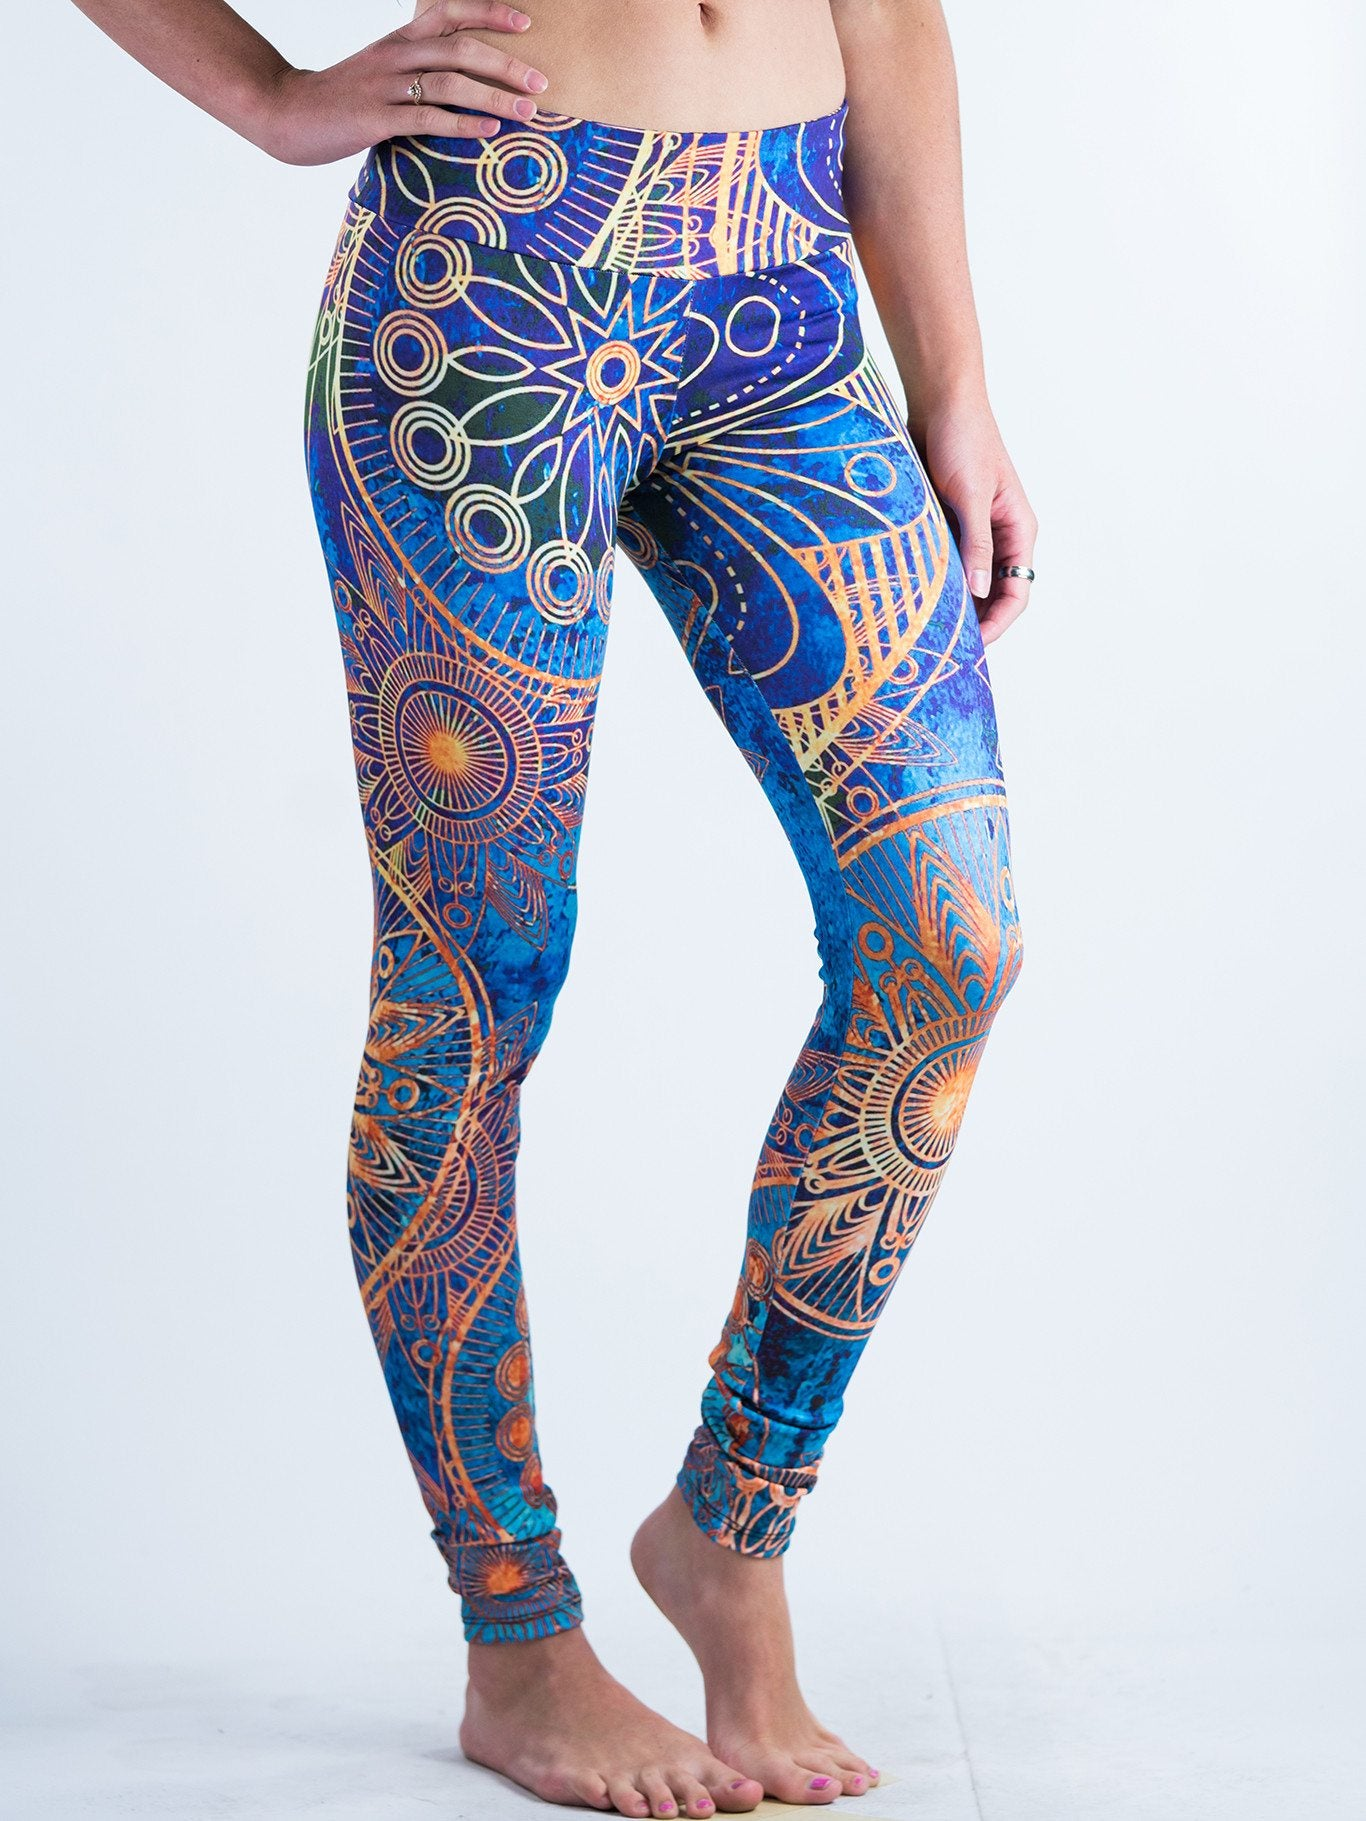 Gold BOHO Leggings Leggings T6 X-Small Blue